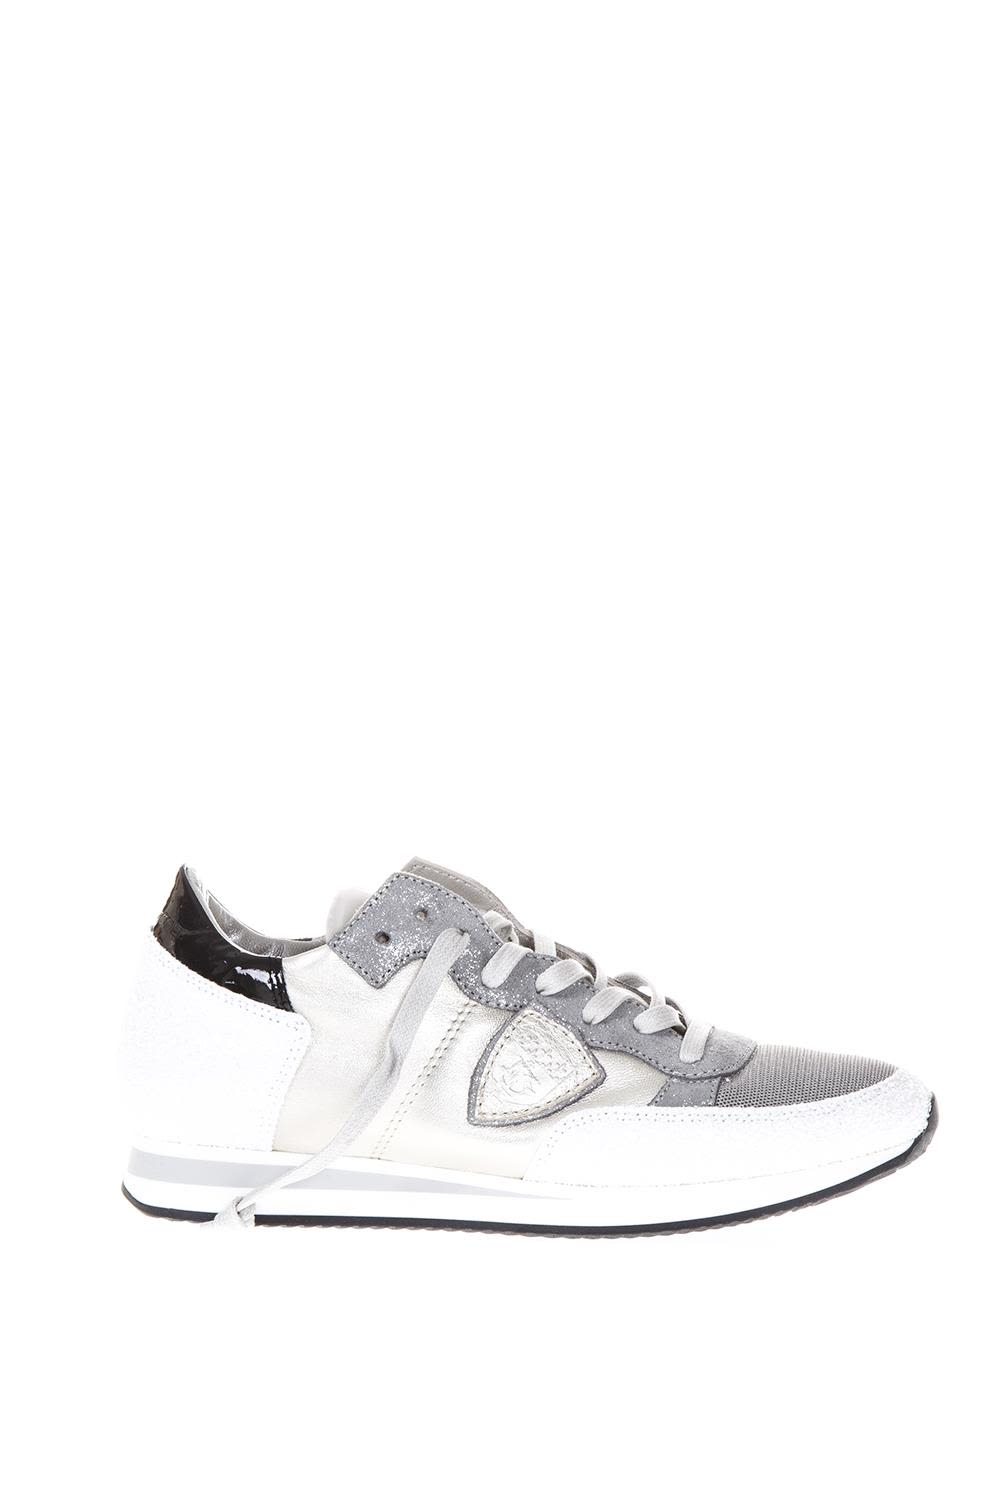 Philippe Model Tropez Suede & Leather Sneakers